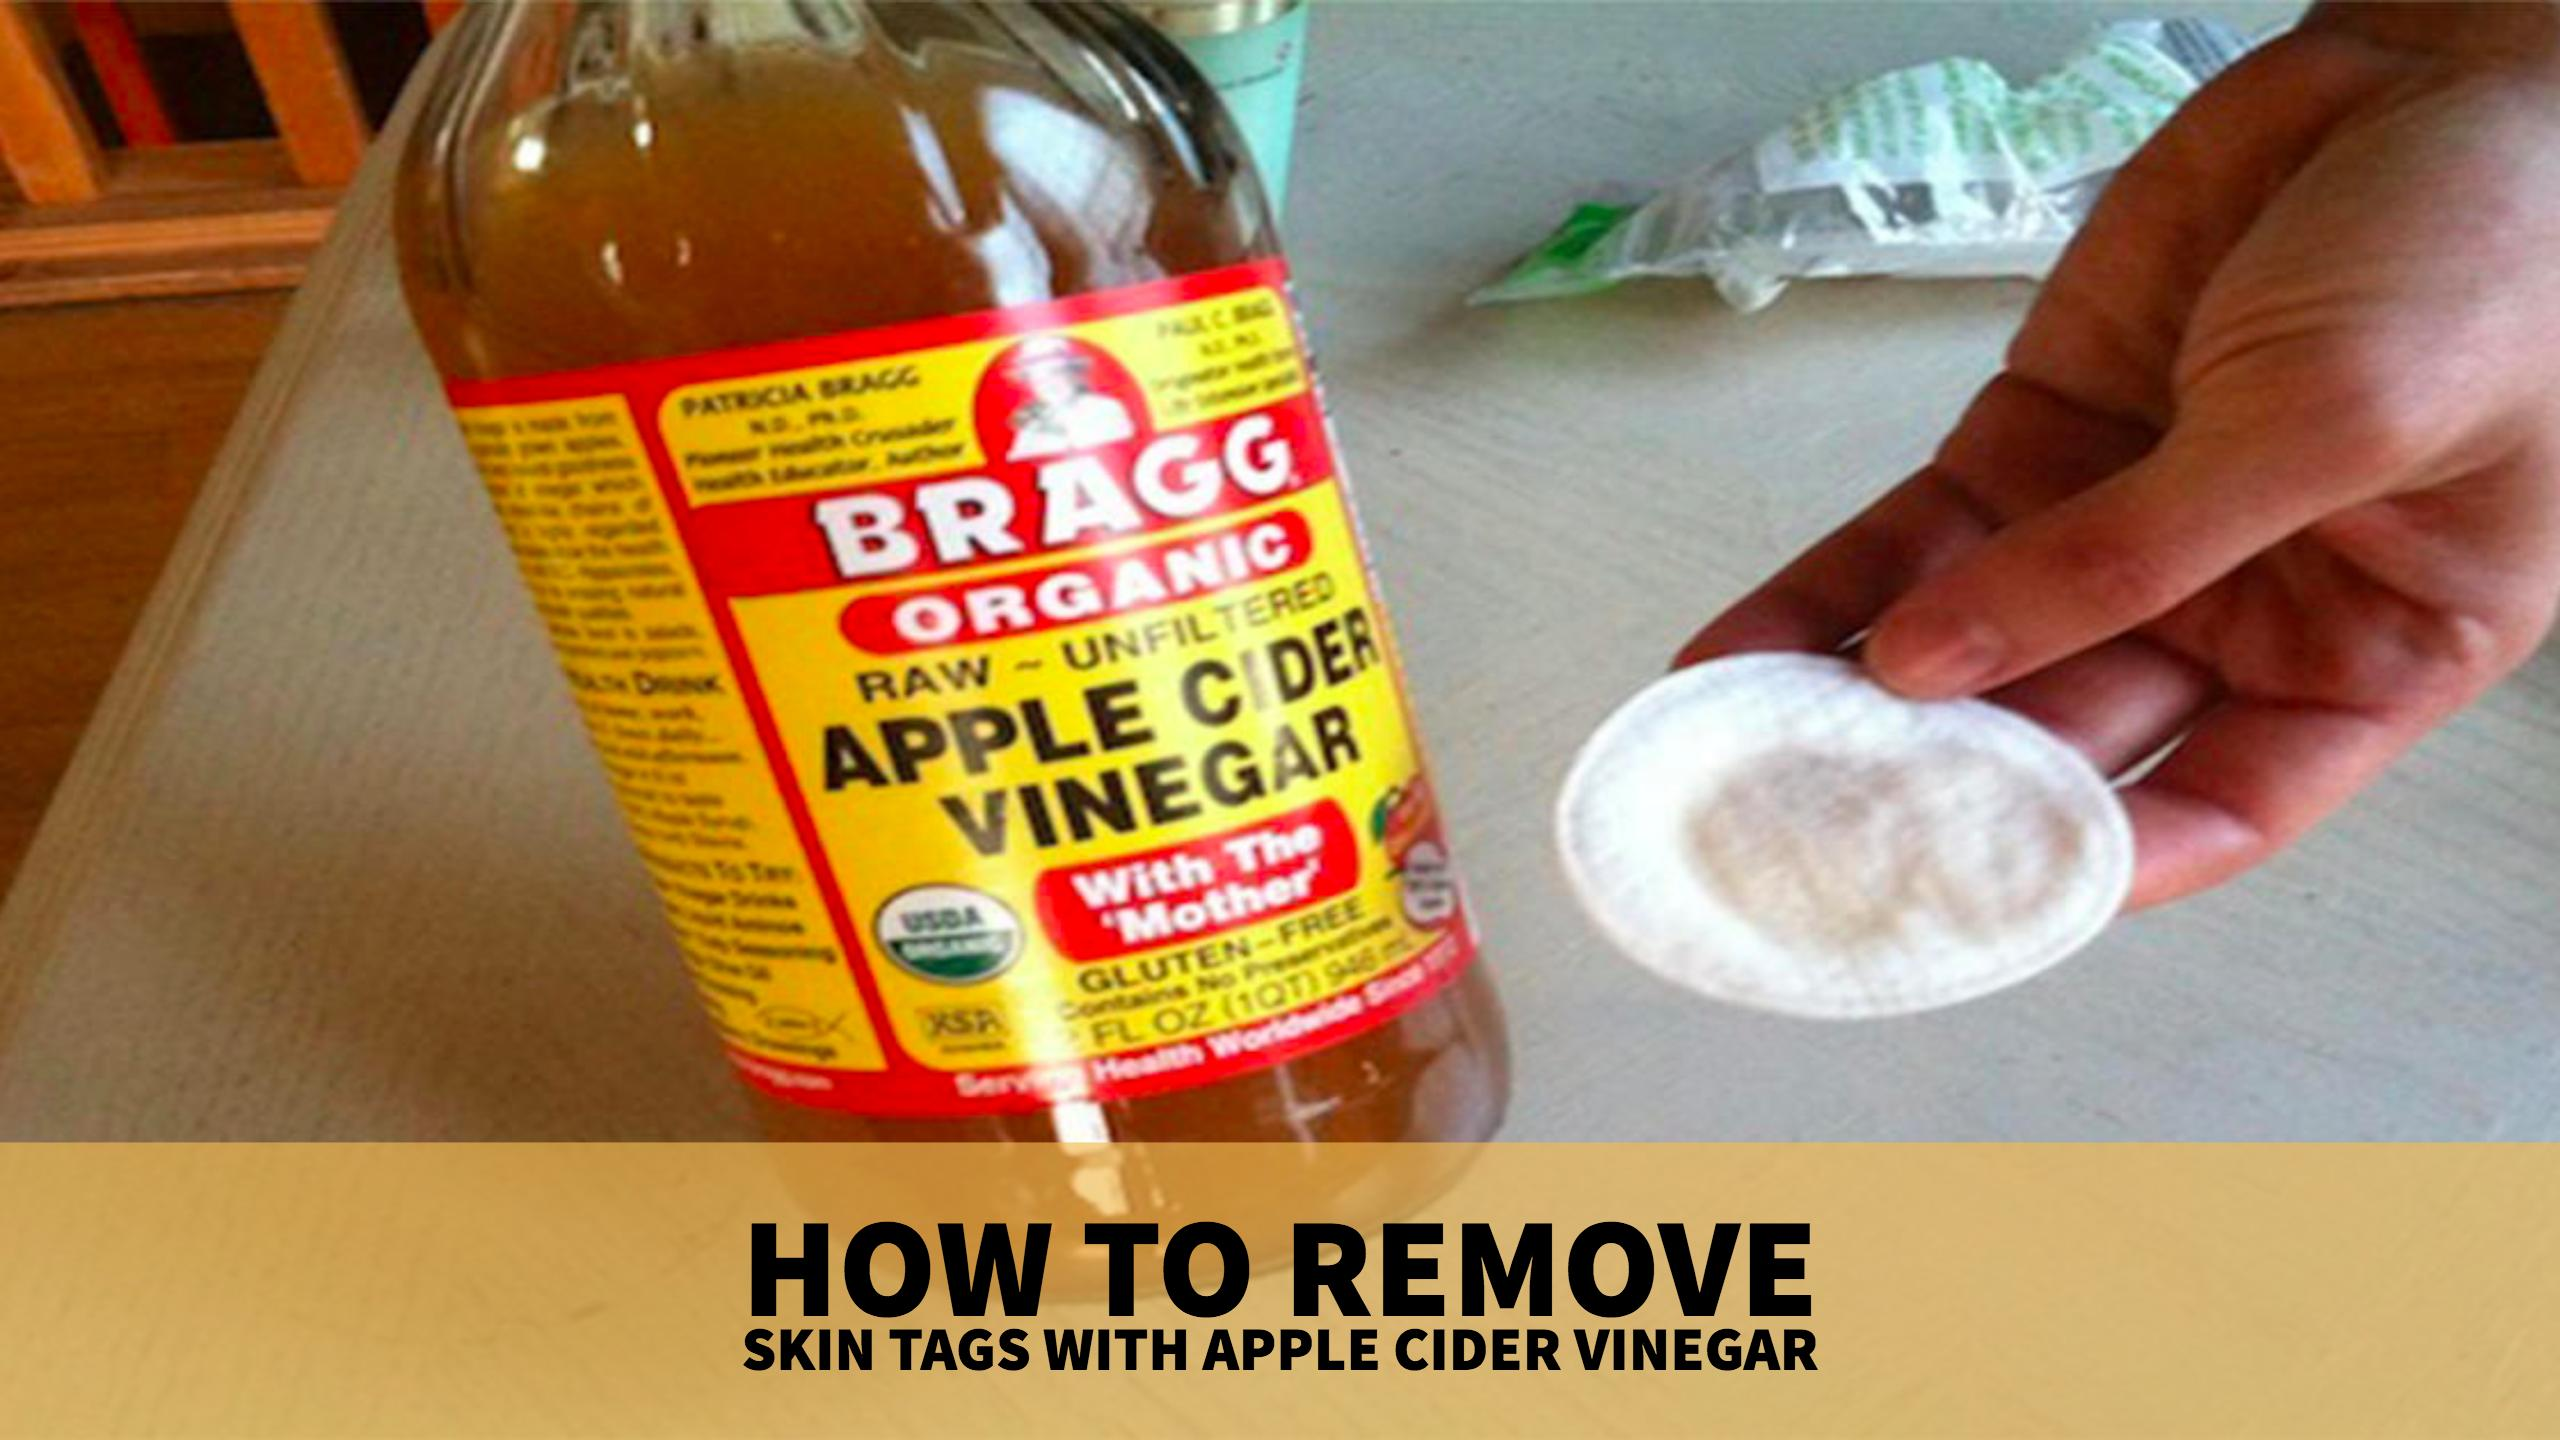 How to Remove Skin Tags with Apple Cider Vinegar